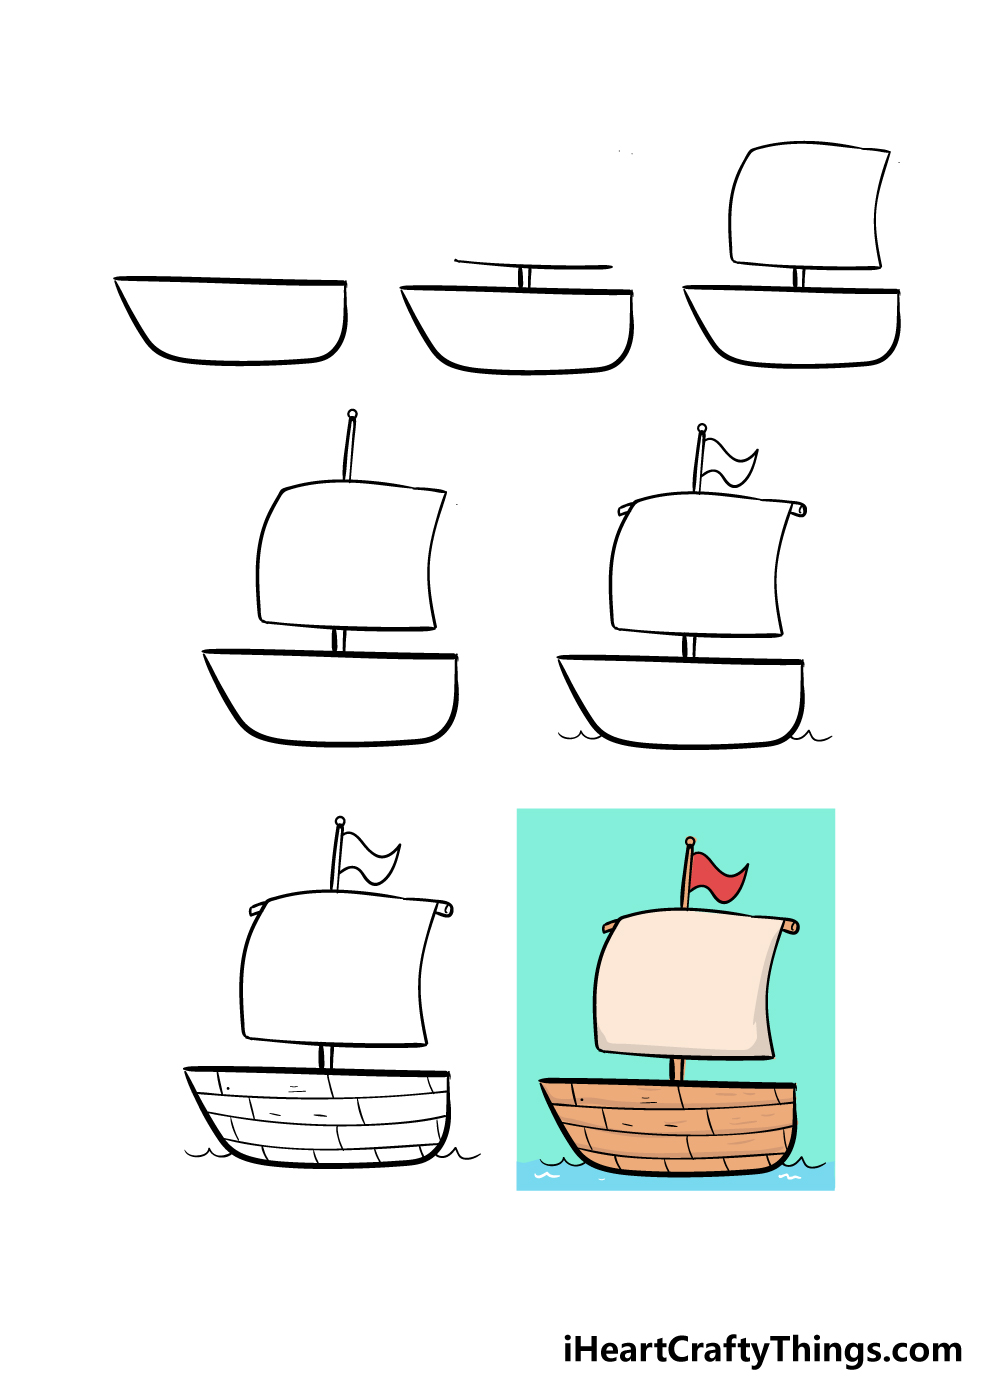 how to draw boat in 7 steps